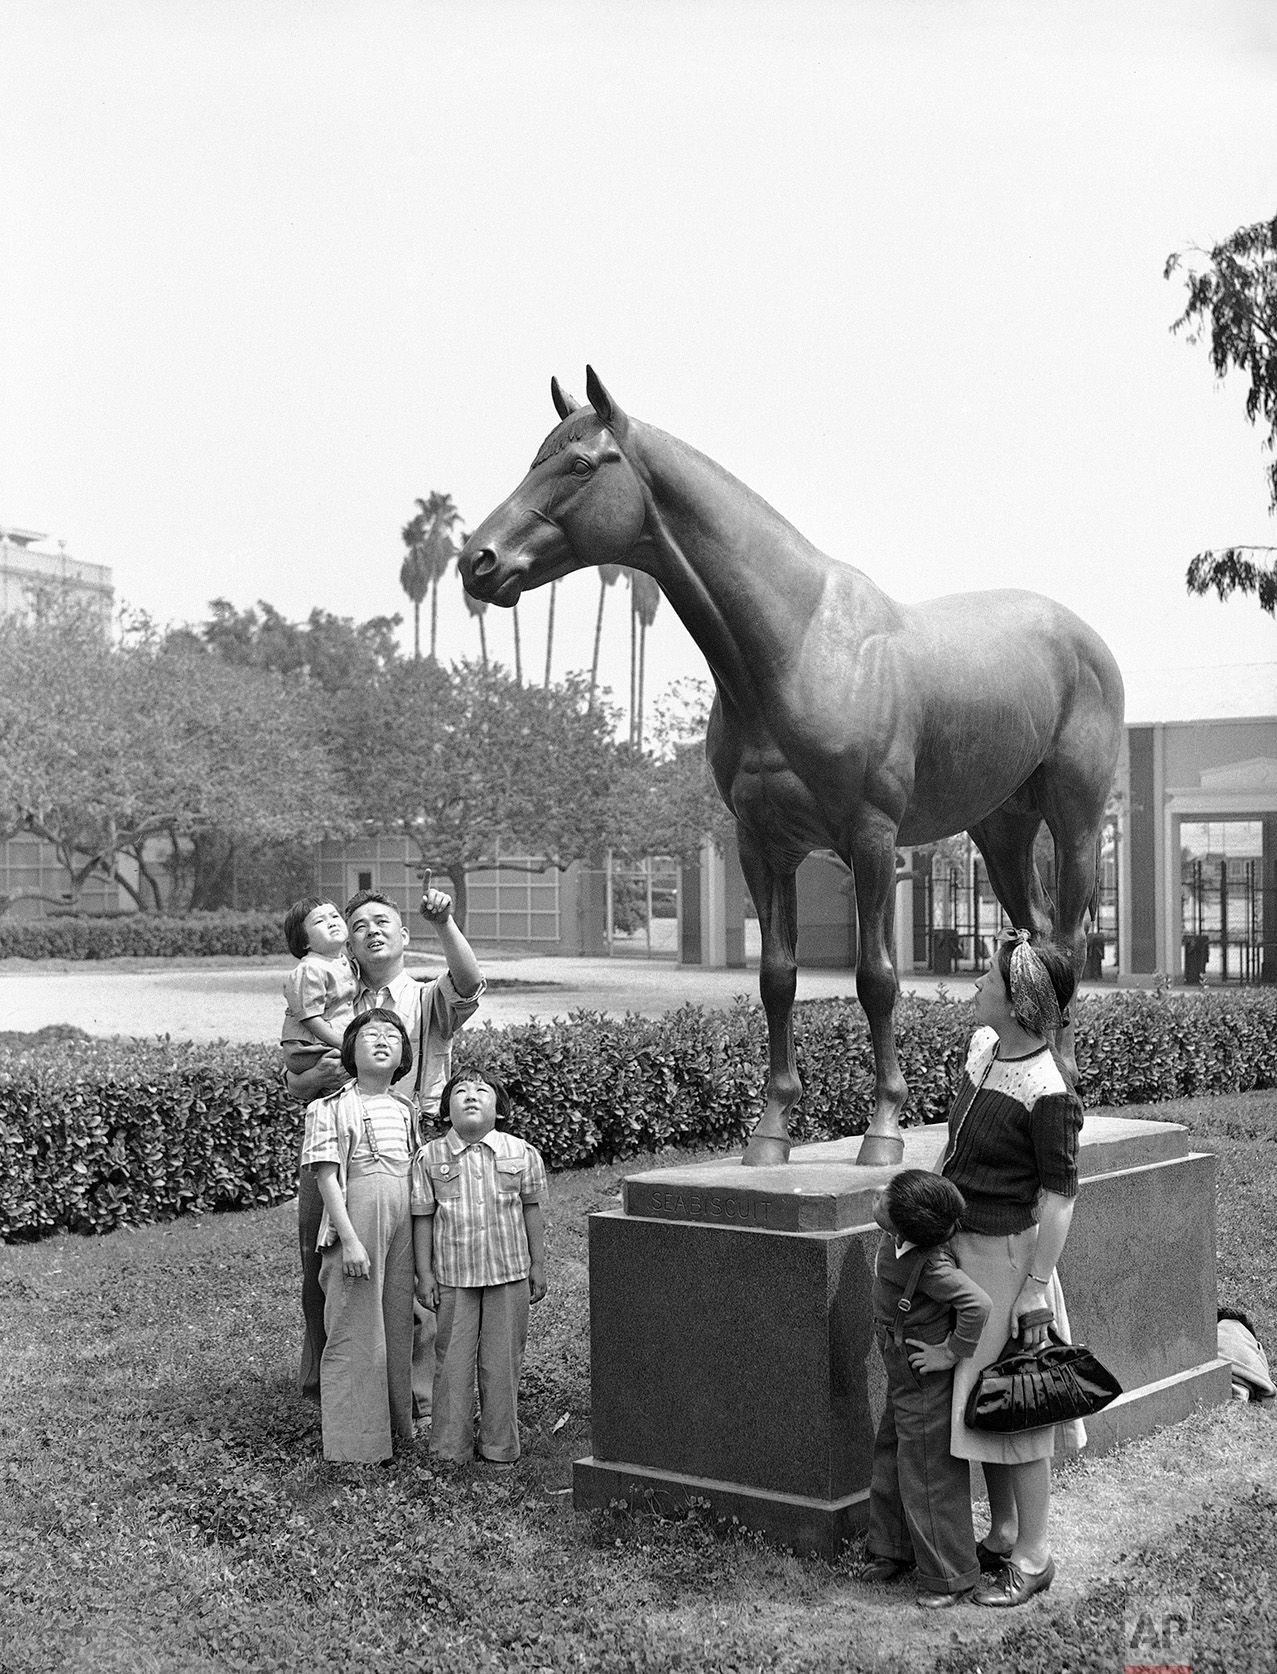 The statue of Seabiscuit, famous race horse, attracts members of an interned Japanese after they arrived at the Santa Anita race track in Arcadia, Calif., April 3, 1942. They were among the first group of evacuees to be quartered at the big racing plant which was converted into an assembly center for evacuated Japanese. (AP Photo/John T. Burns)